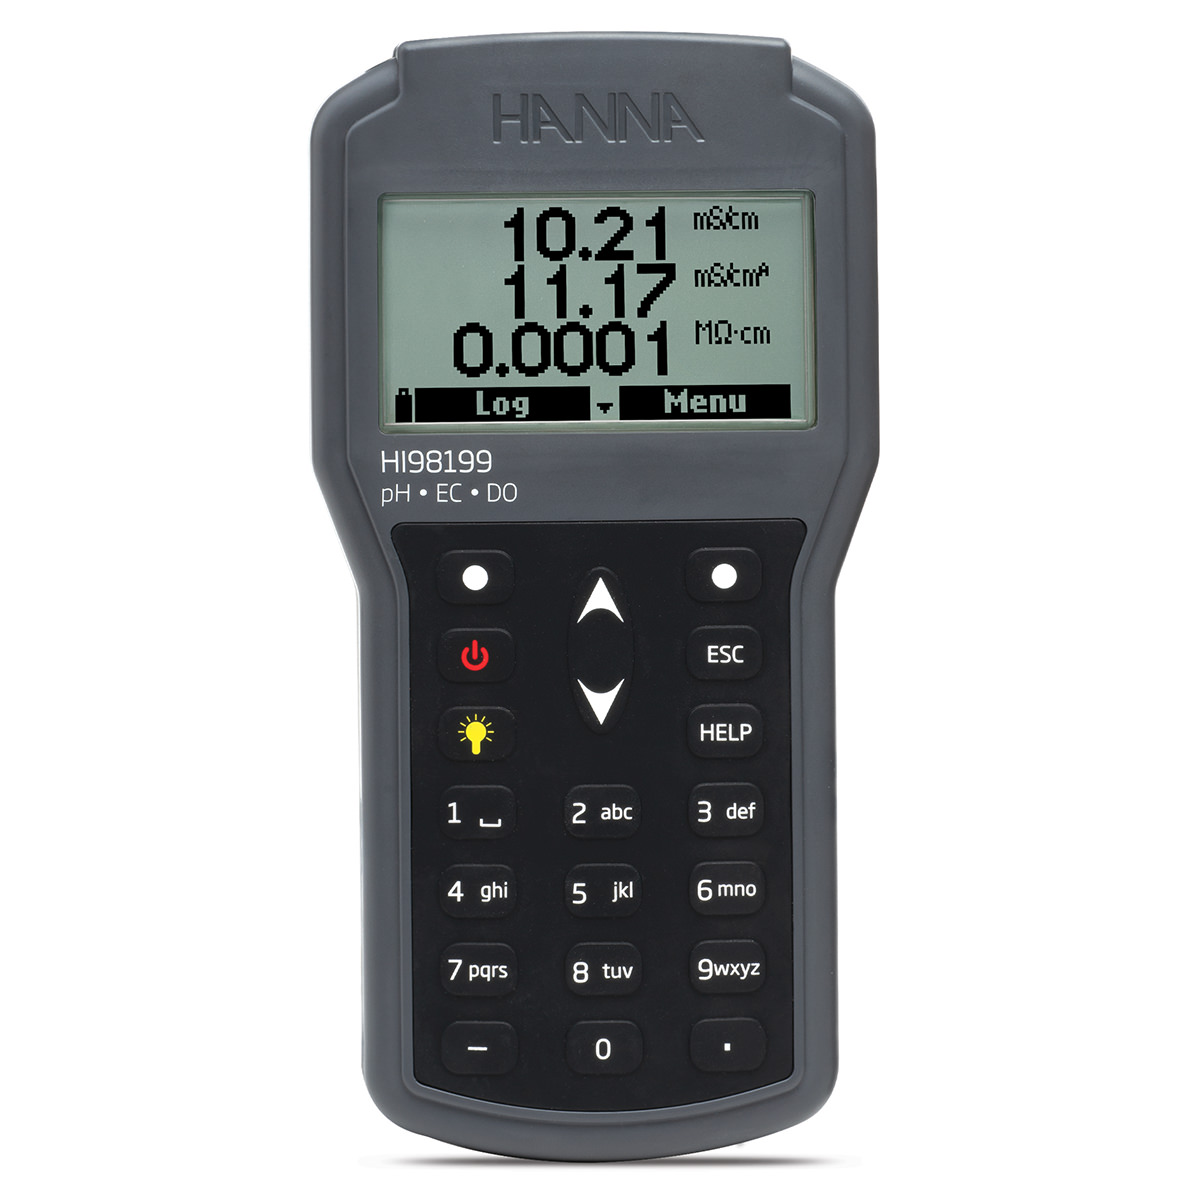 Multiparameter Portable pH/EC/DO Waterproof Meter - HI98199